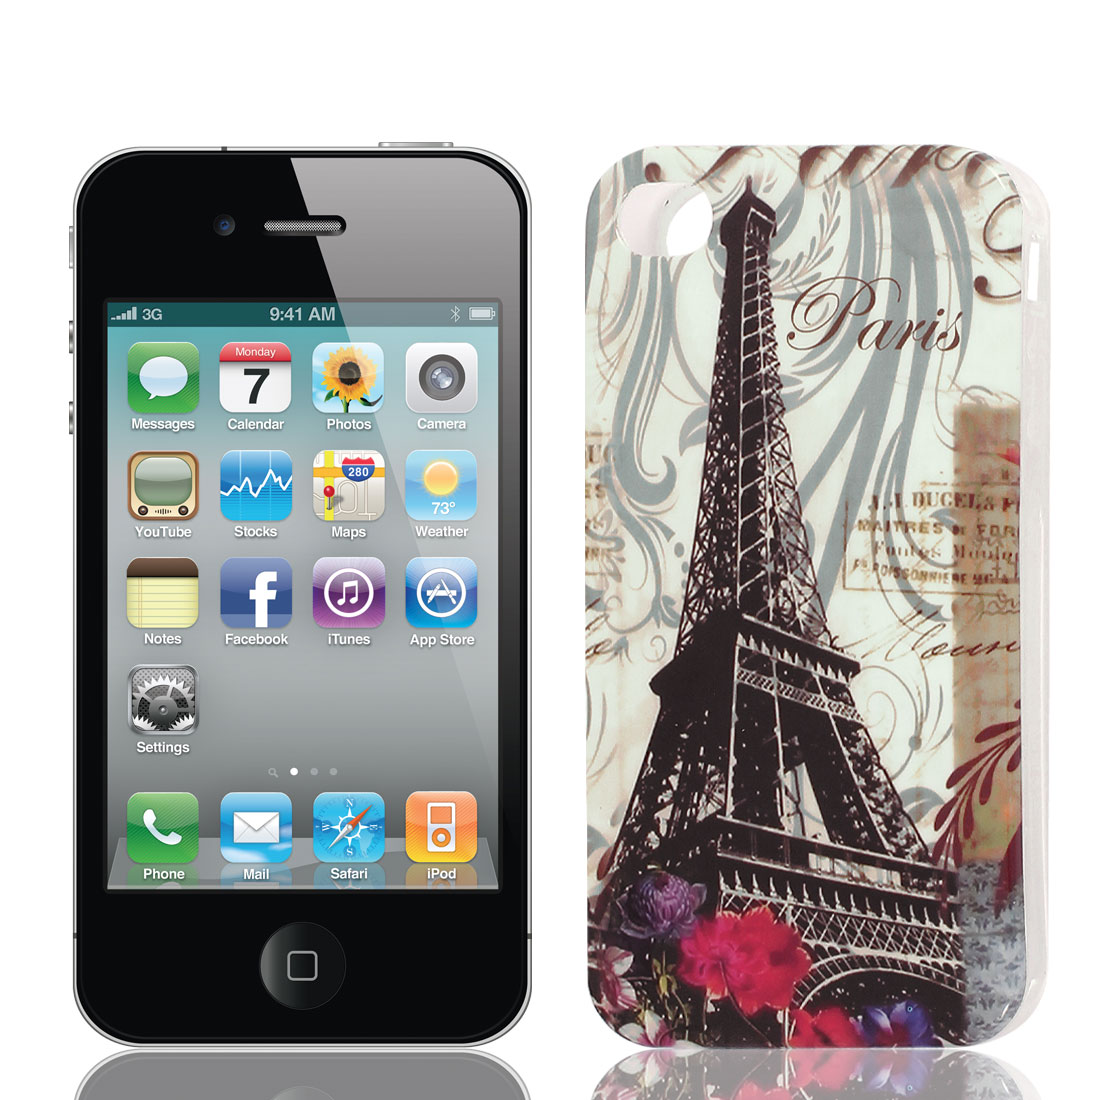 Black Eiffel Tower Pattern Soft Plastic Protective Skin Case Cover for Apple iPhone 4 4G 4S